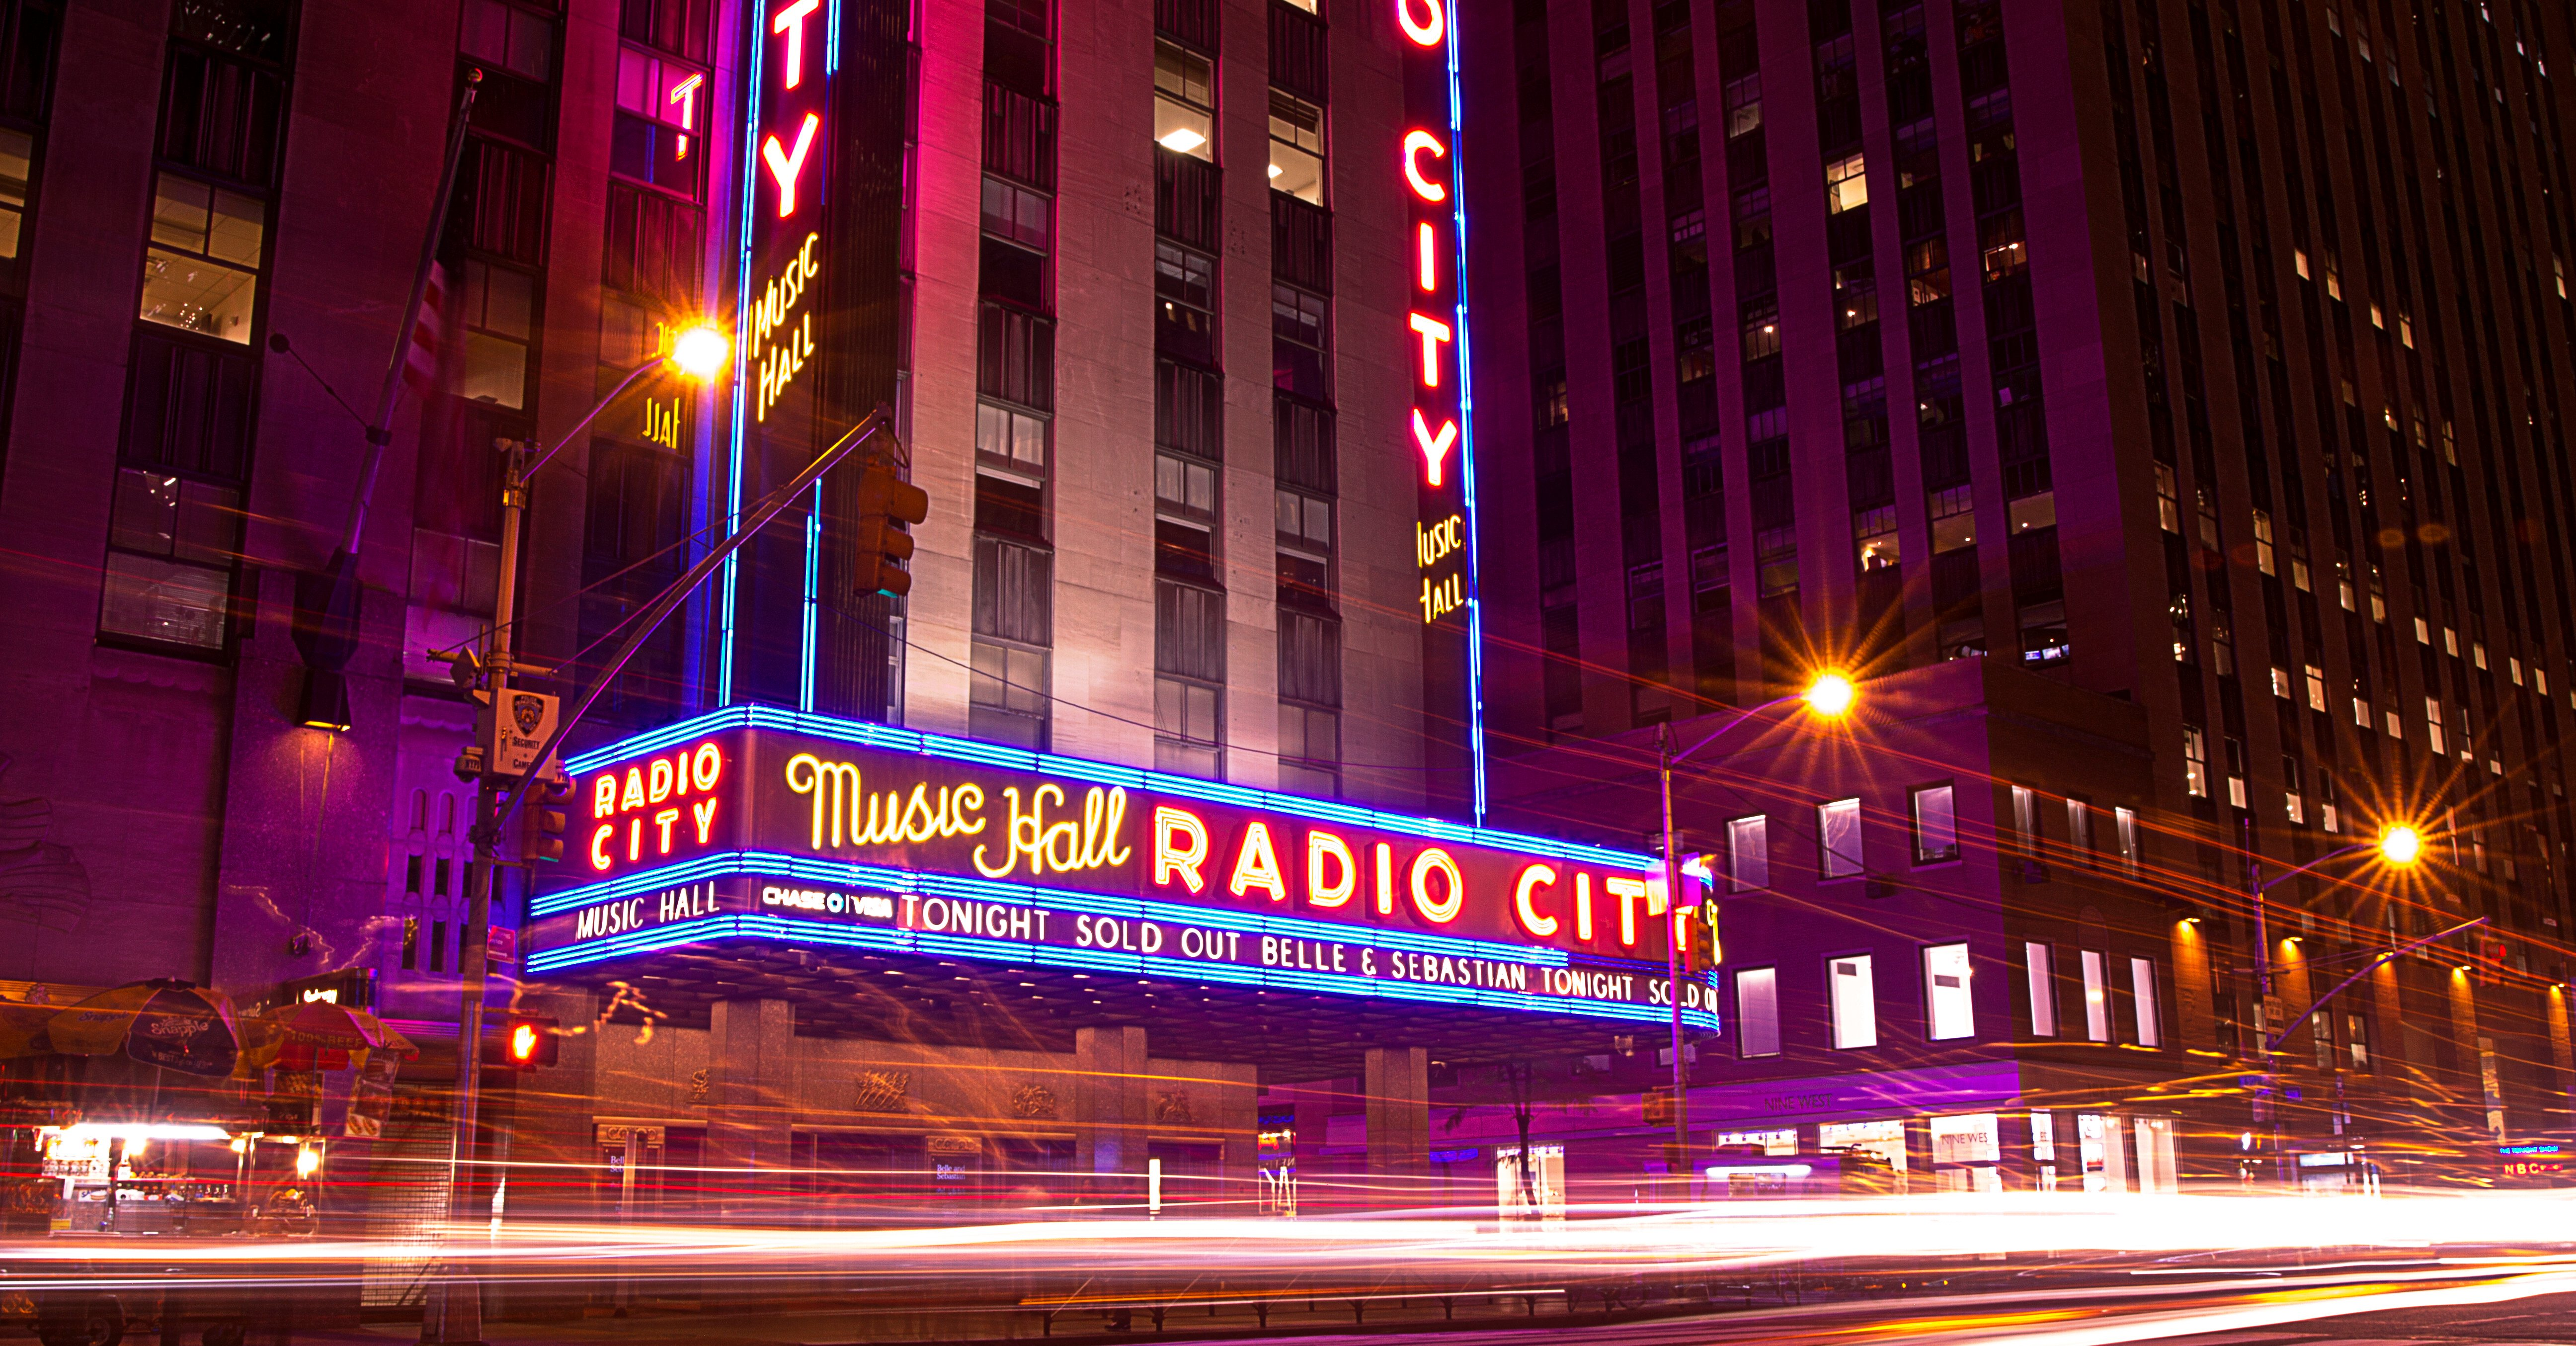 7a9714f444d25 Radio City Music Hall Performances This Month - December 2017